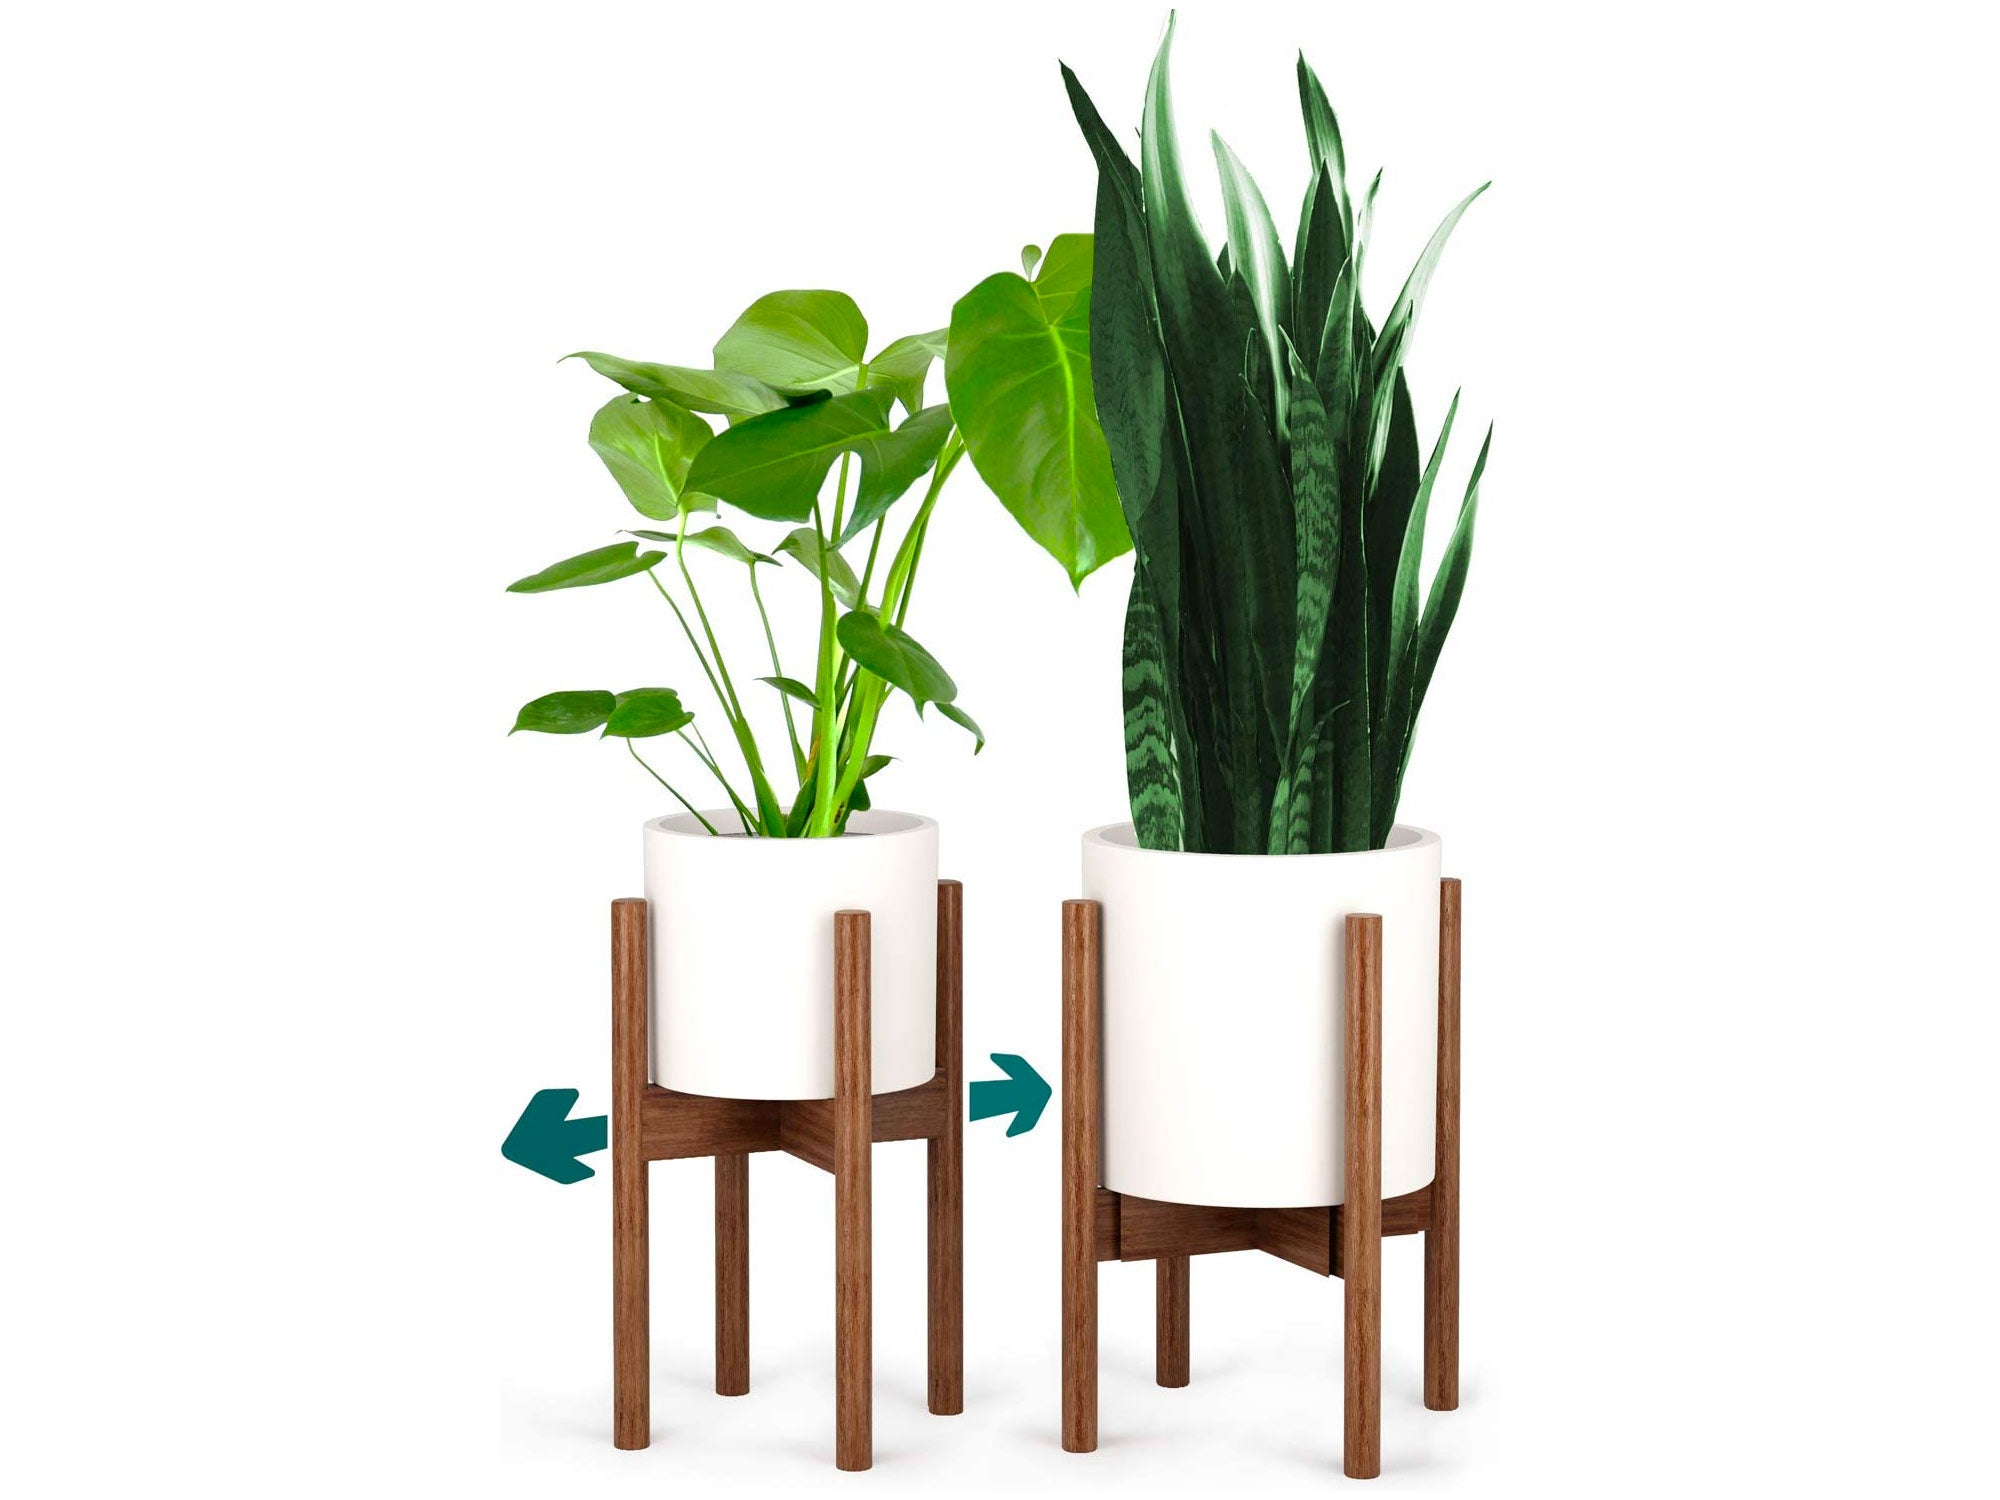 Fox & Fern Mid-Century Modern Plant Stand - Bamboo - EXCLUDING 12